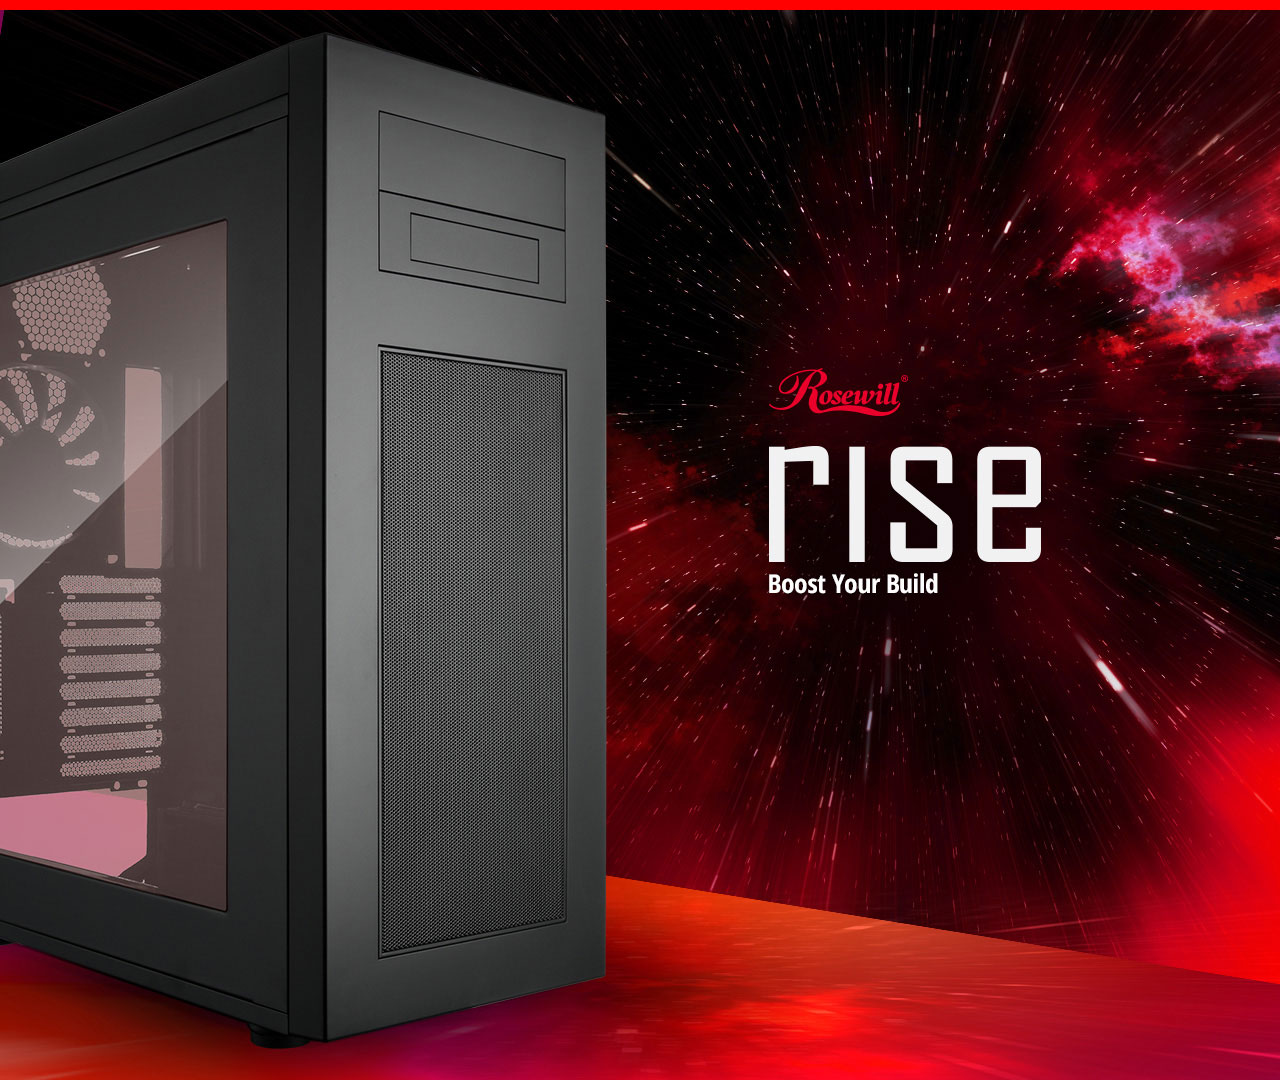 Rosewill RISE banner with the case facing to the right on a desk that's blend with a red galactical background. There is also text that reads: Boost Your Build